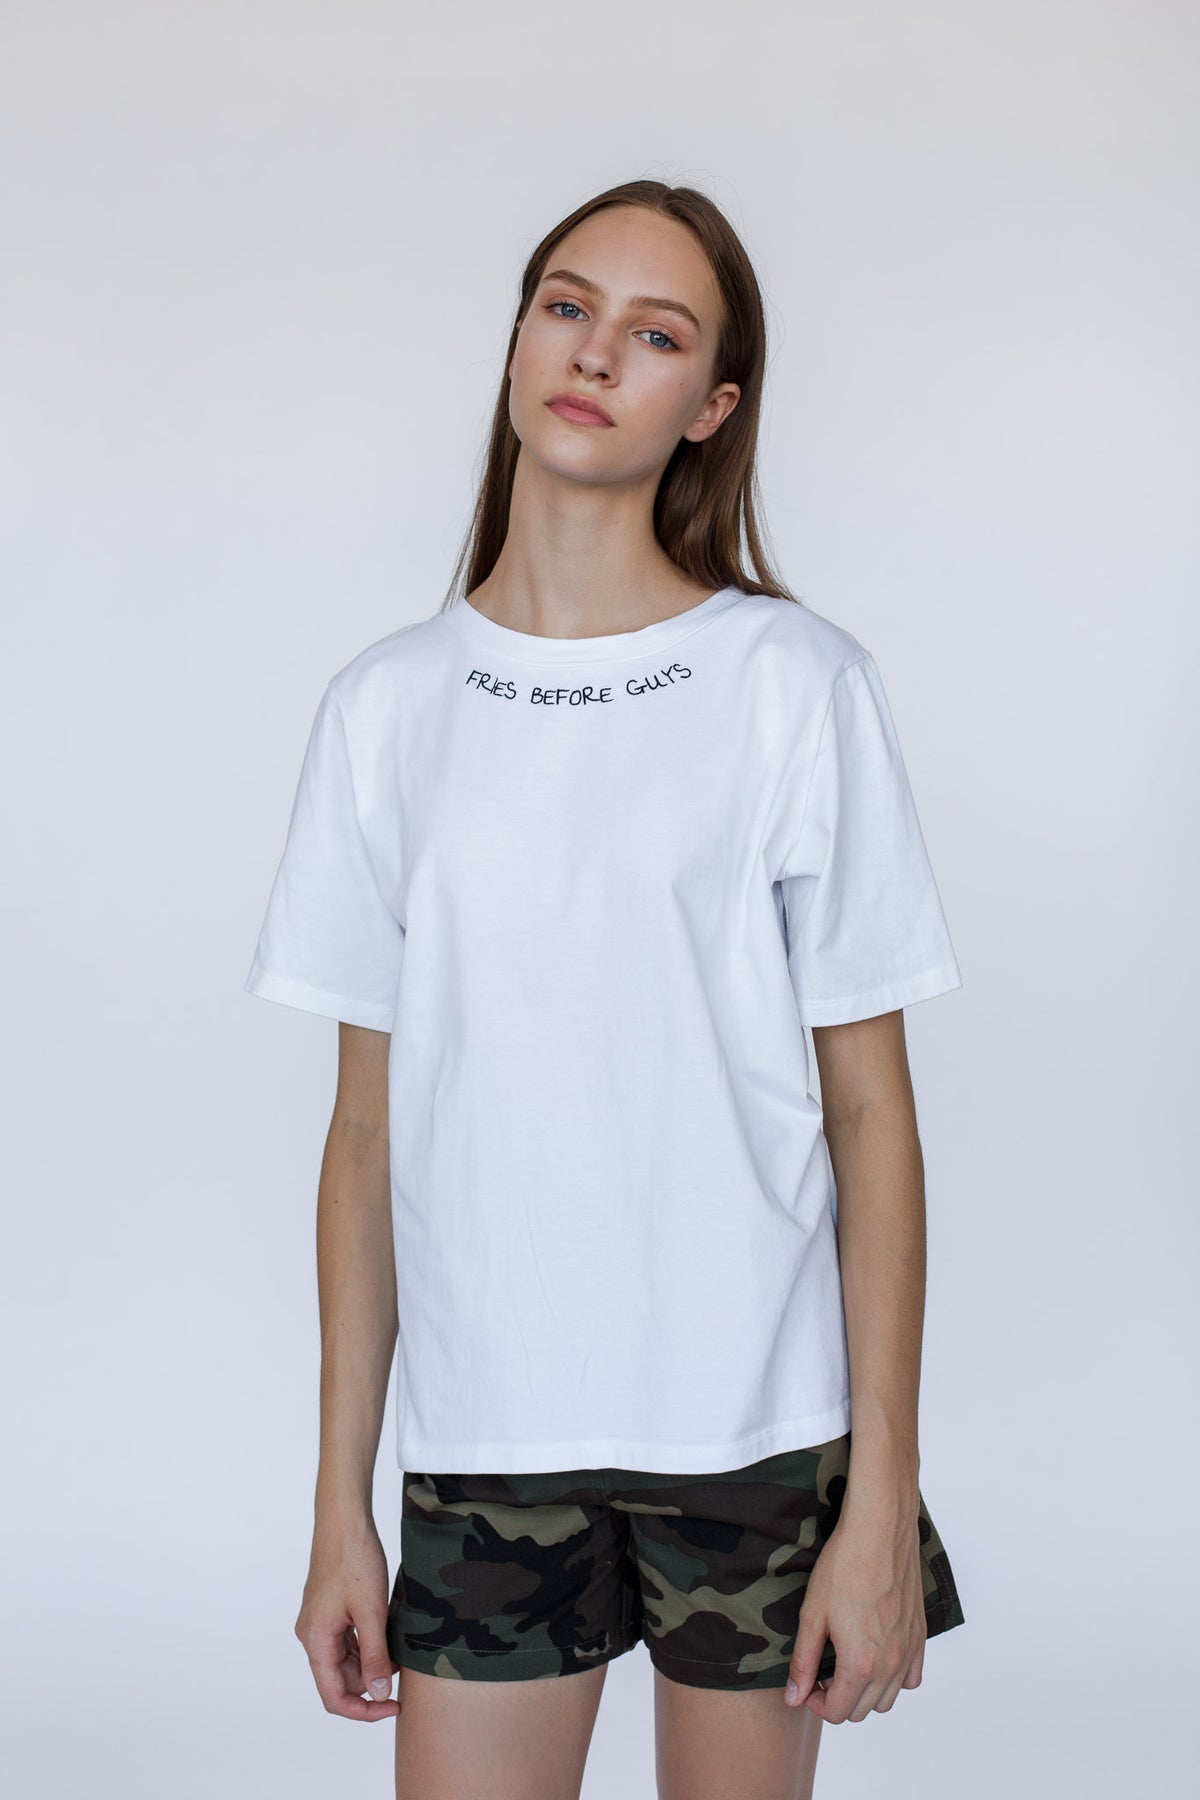 Oversize-cotton-white-t-shirt-quote-fries-before-guys-Le-SLAP-clothing.jpg